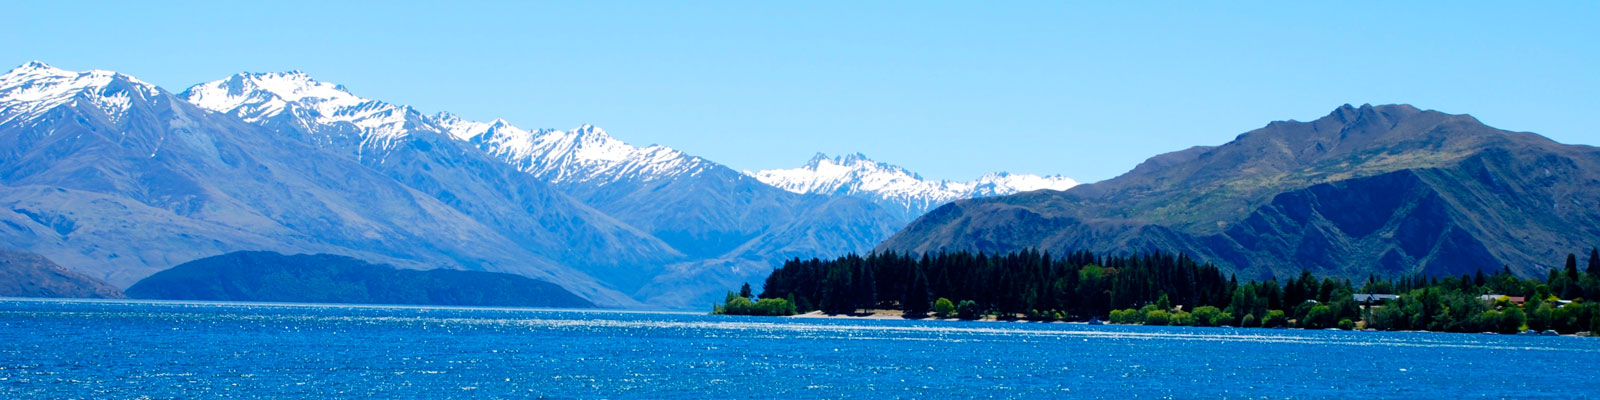 New Zealand Vegan Travel Guide